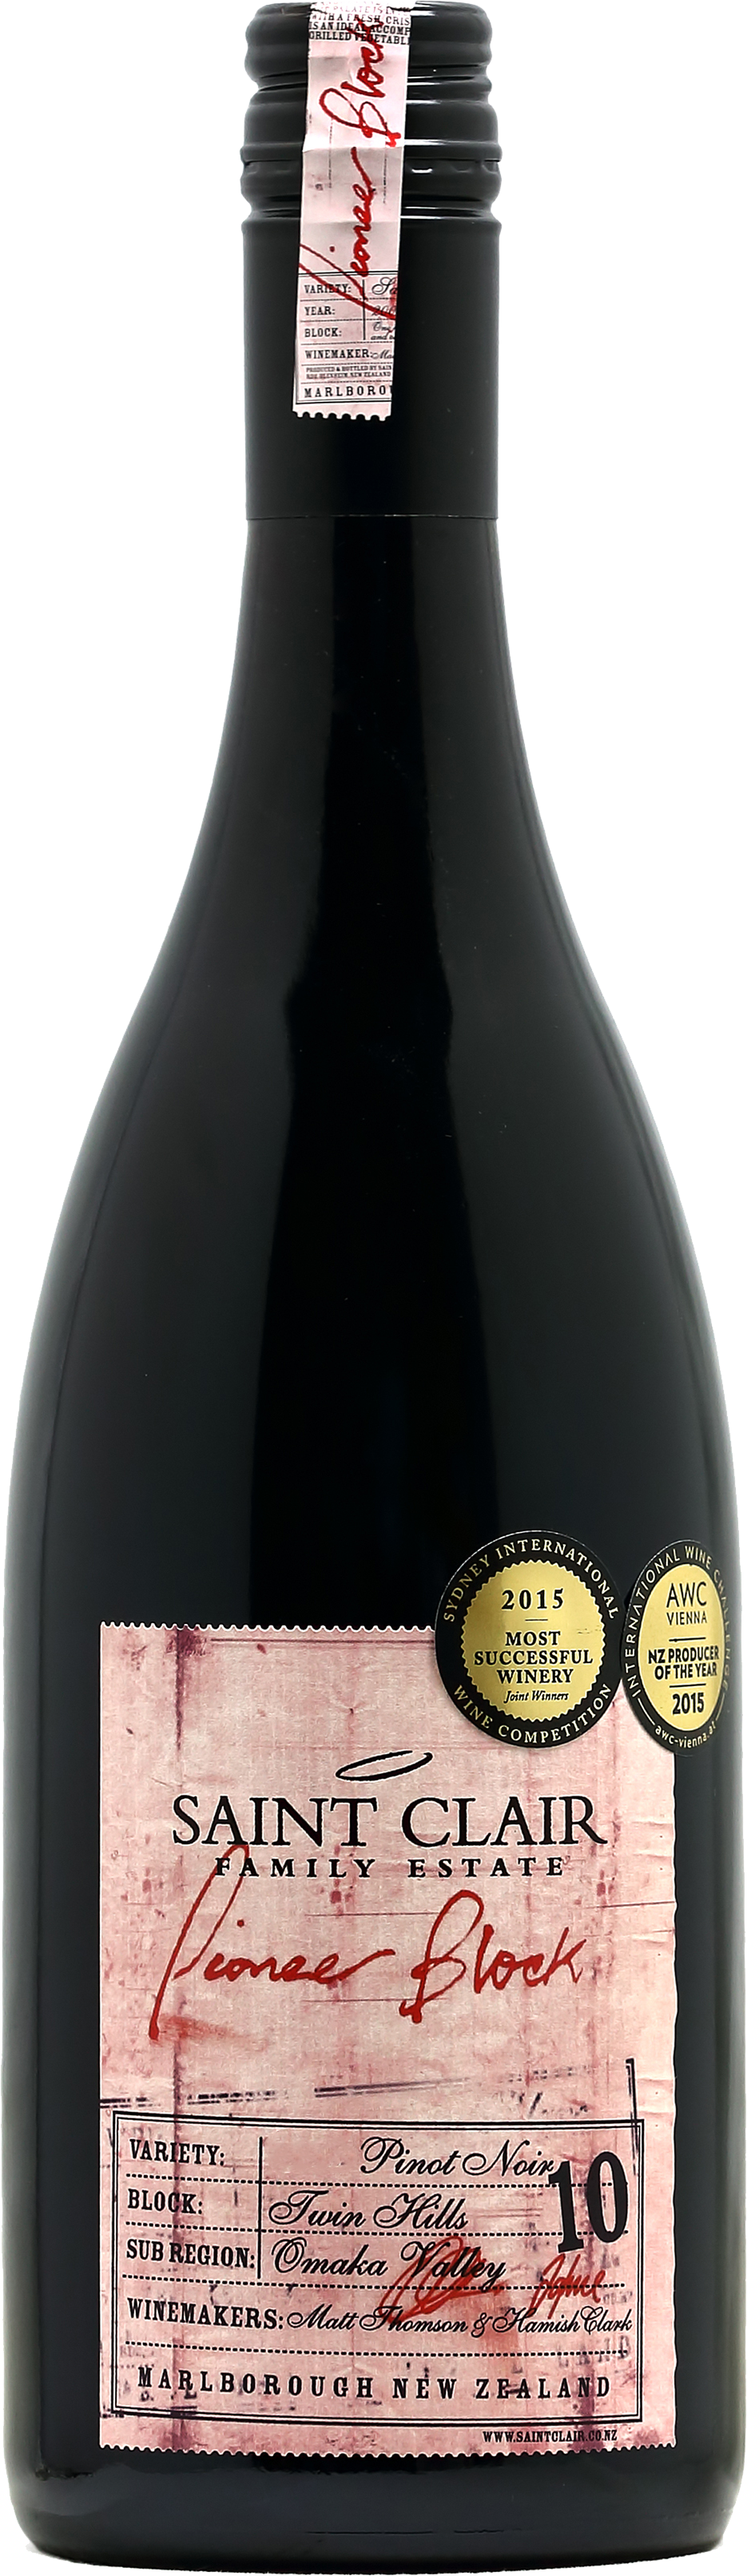 2018-Saint Clair Pinot Noir Pioneer Block 10 Red